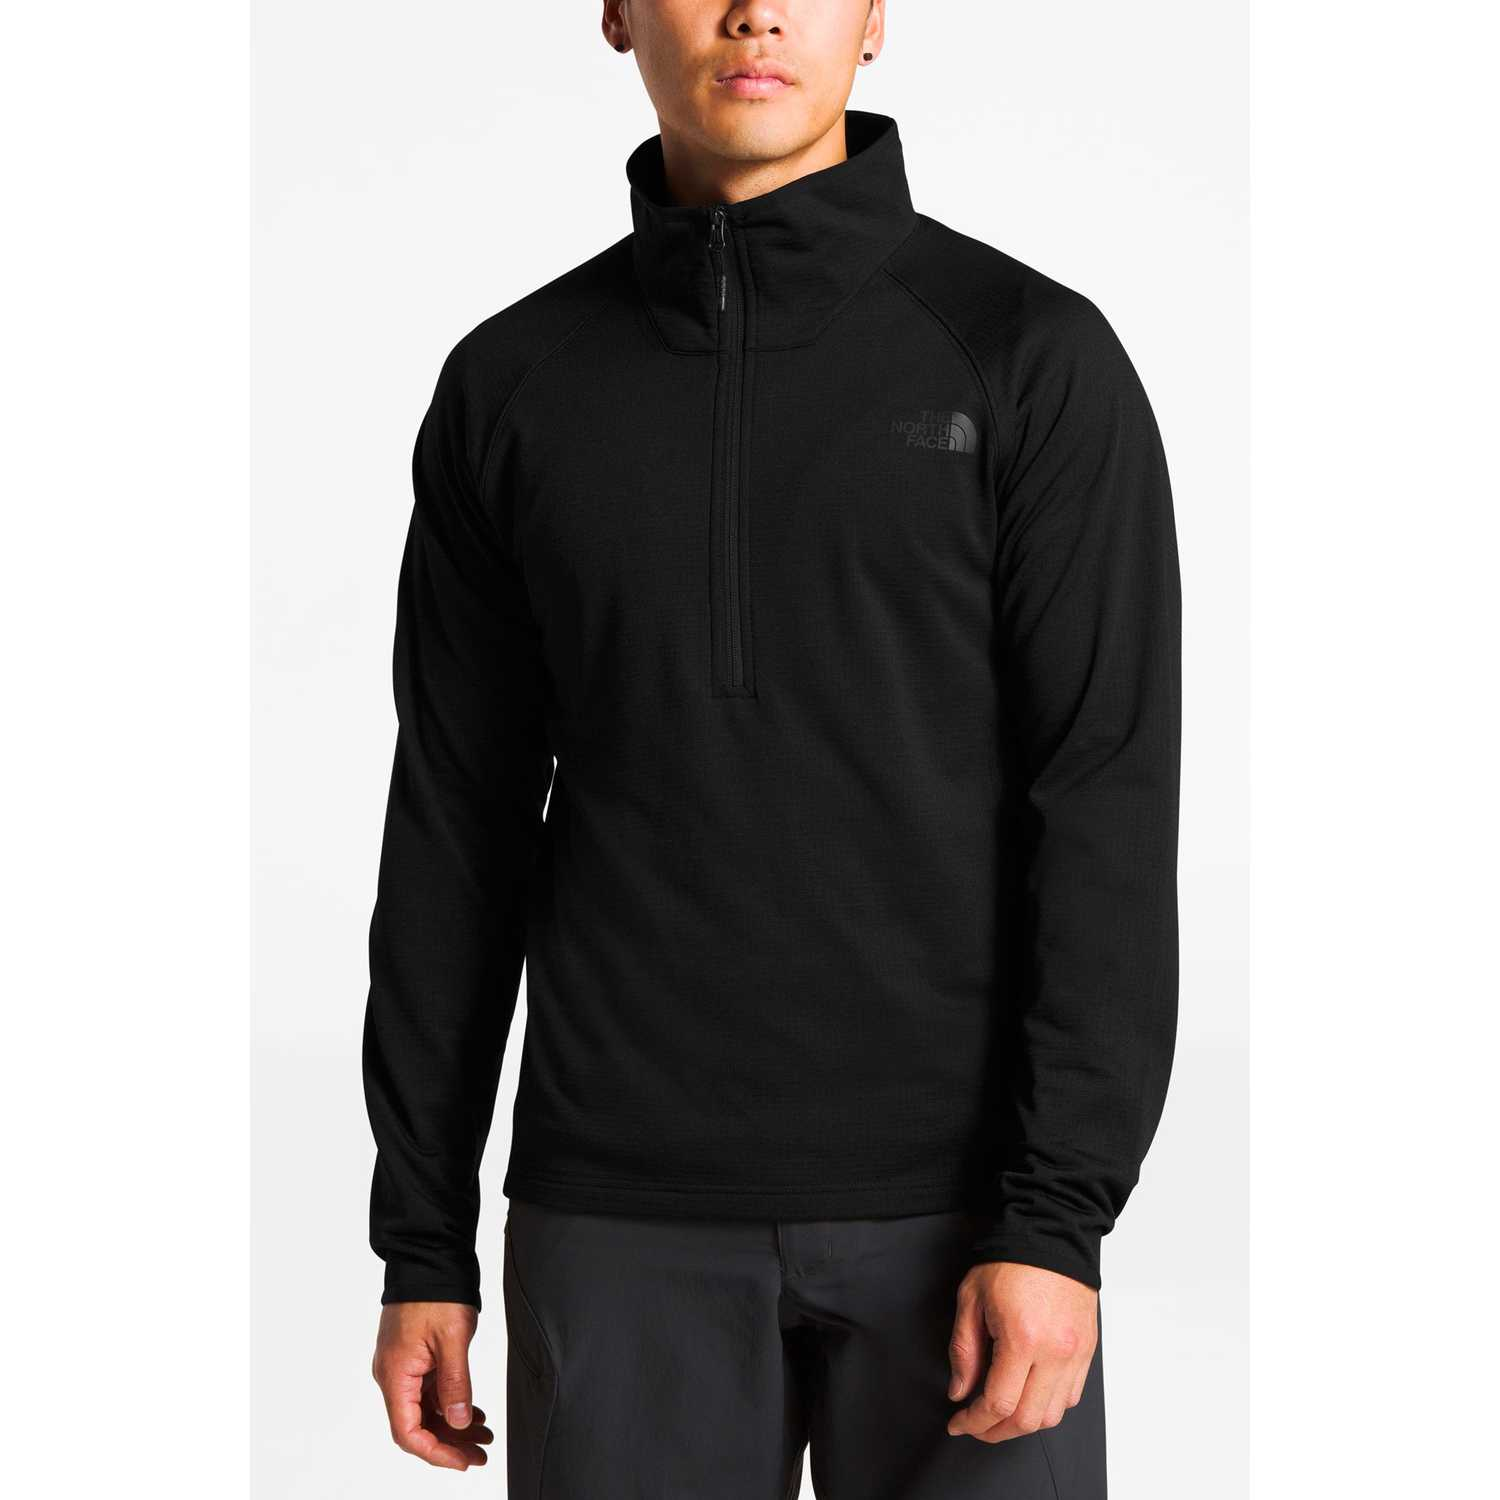 The North Face m borod 1/4 zip Negro Pullovers